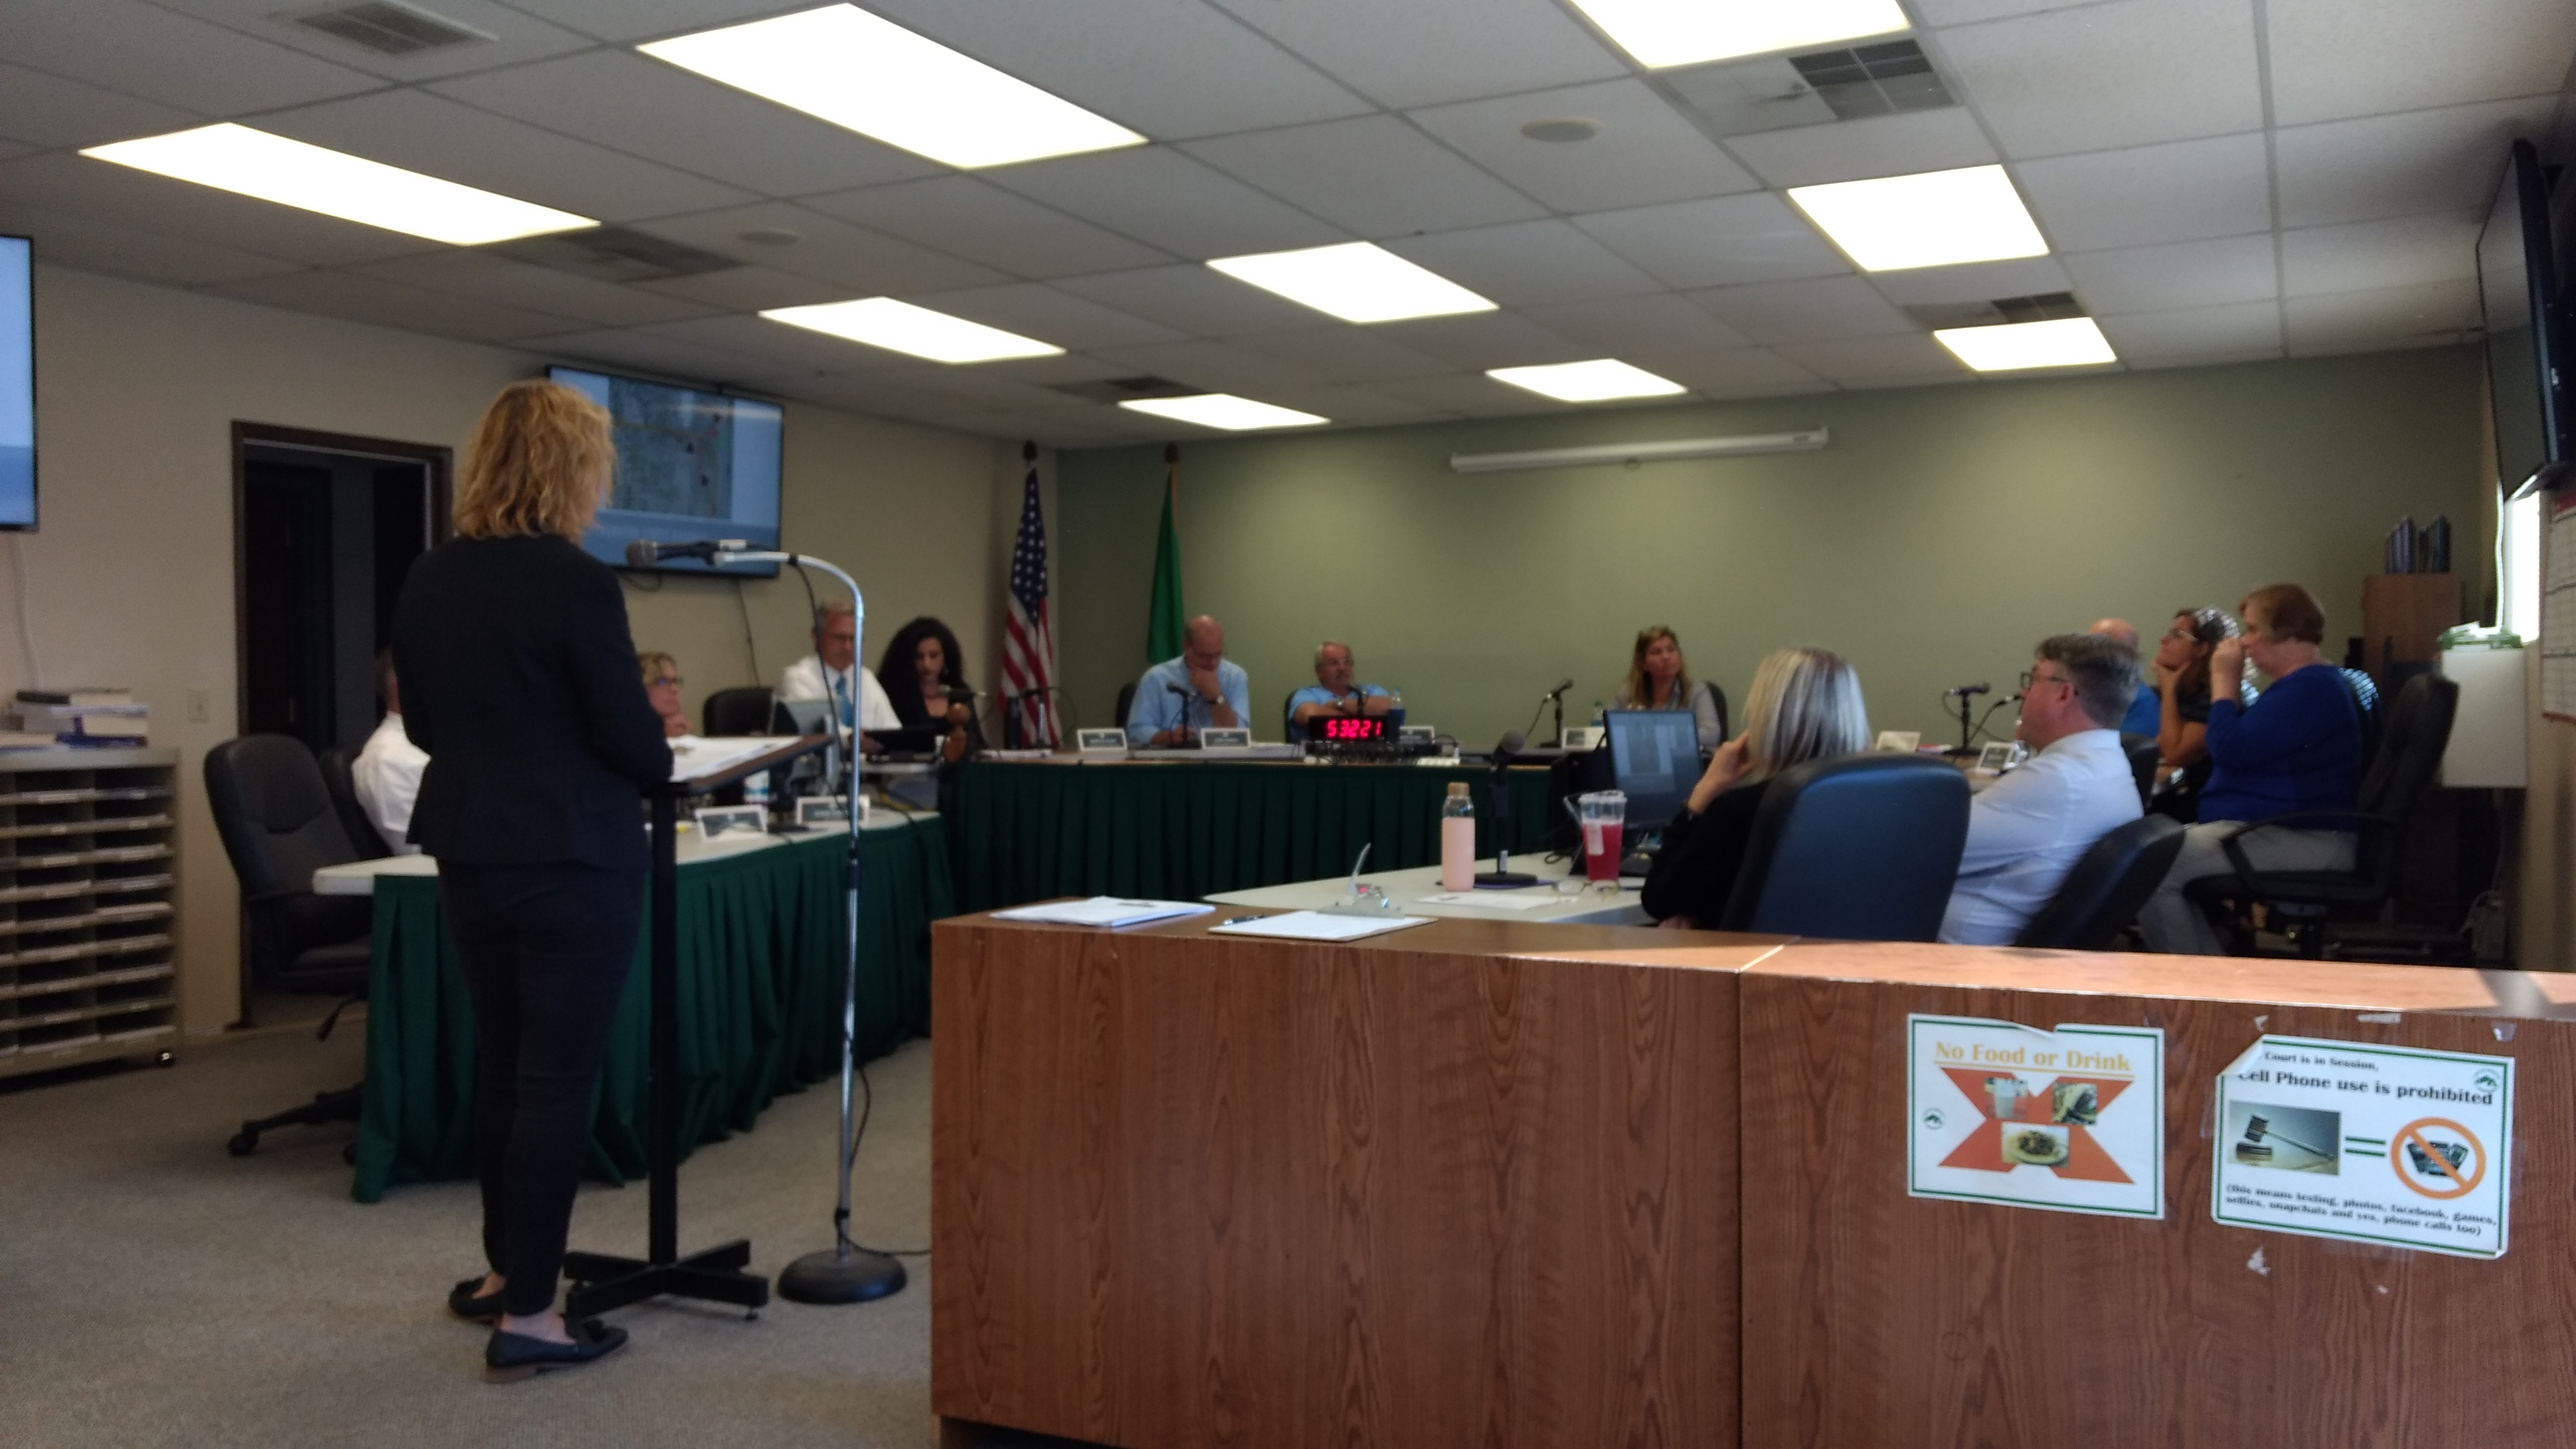 Capital Projects Manager Katy Radder speaks to the Ferndale City Council (August 19, 2019). Photo: My Ferndale News